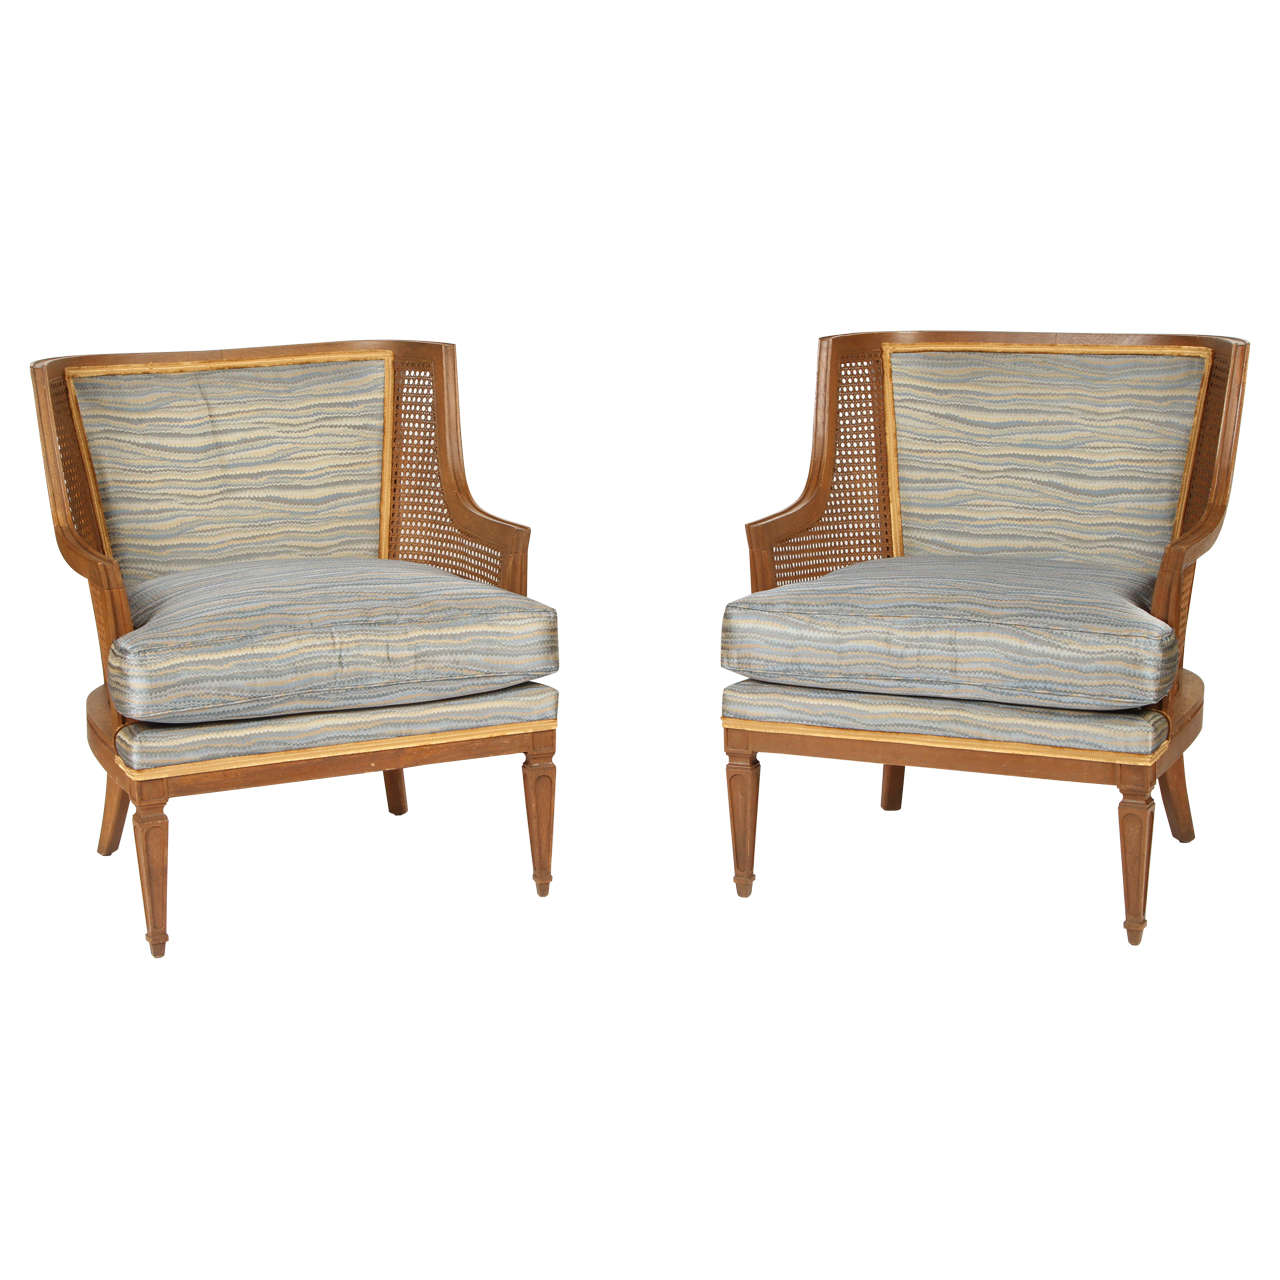 Pair of Caned French 1940s Armchairs